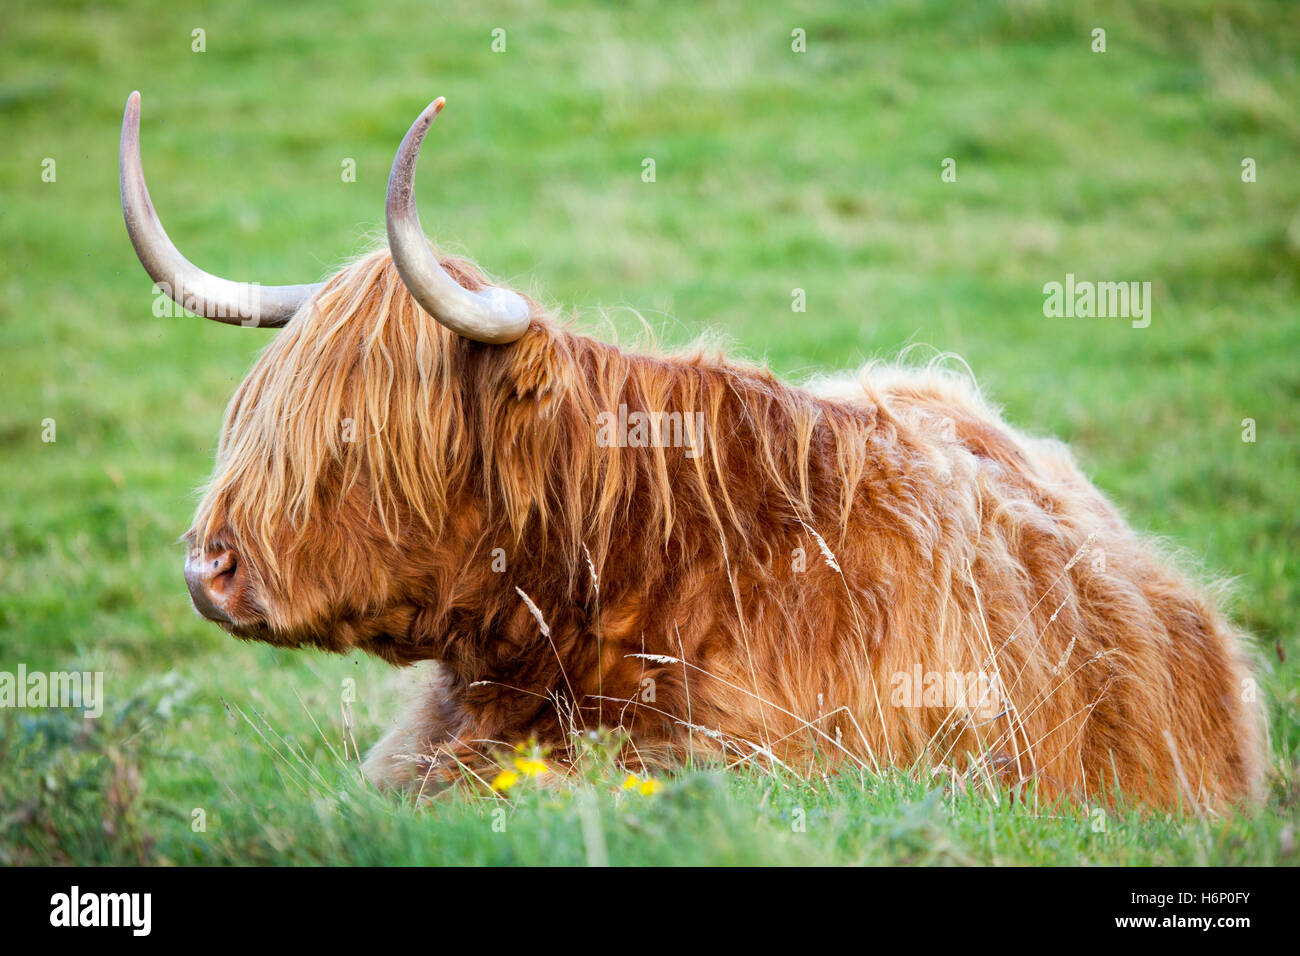 Highland Cattle lay down in meadow during pleasant weather in the Scottish Highlands - Stock Image